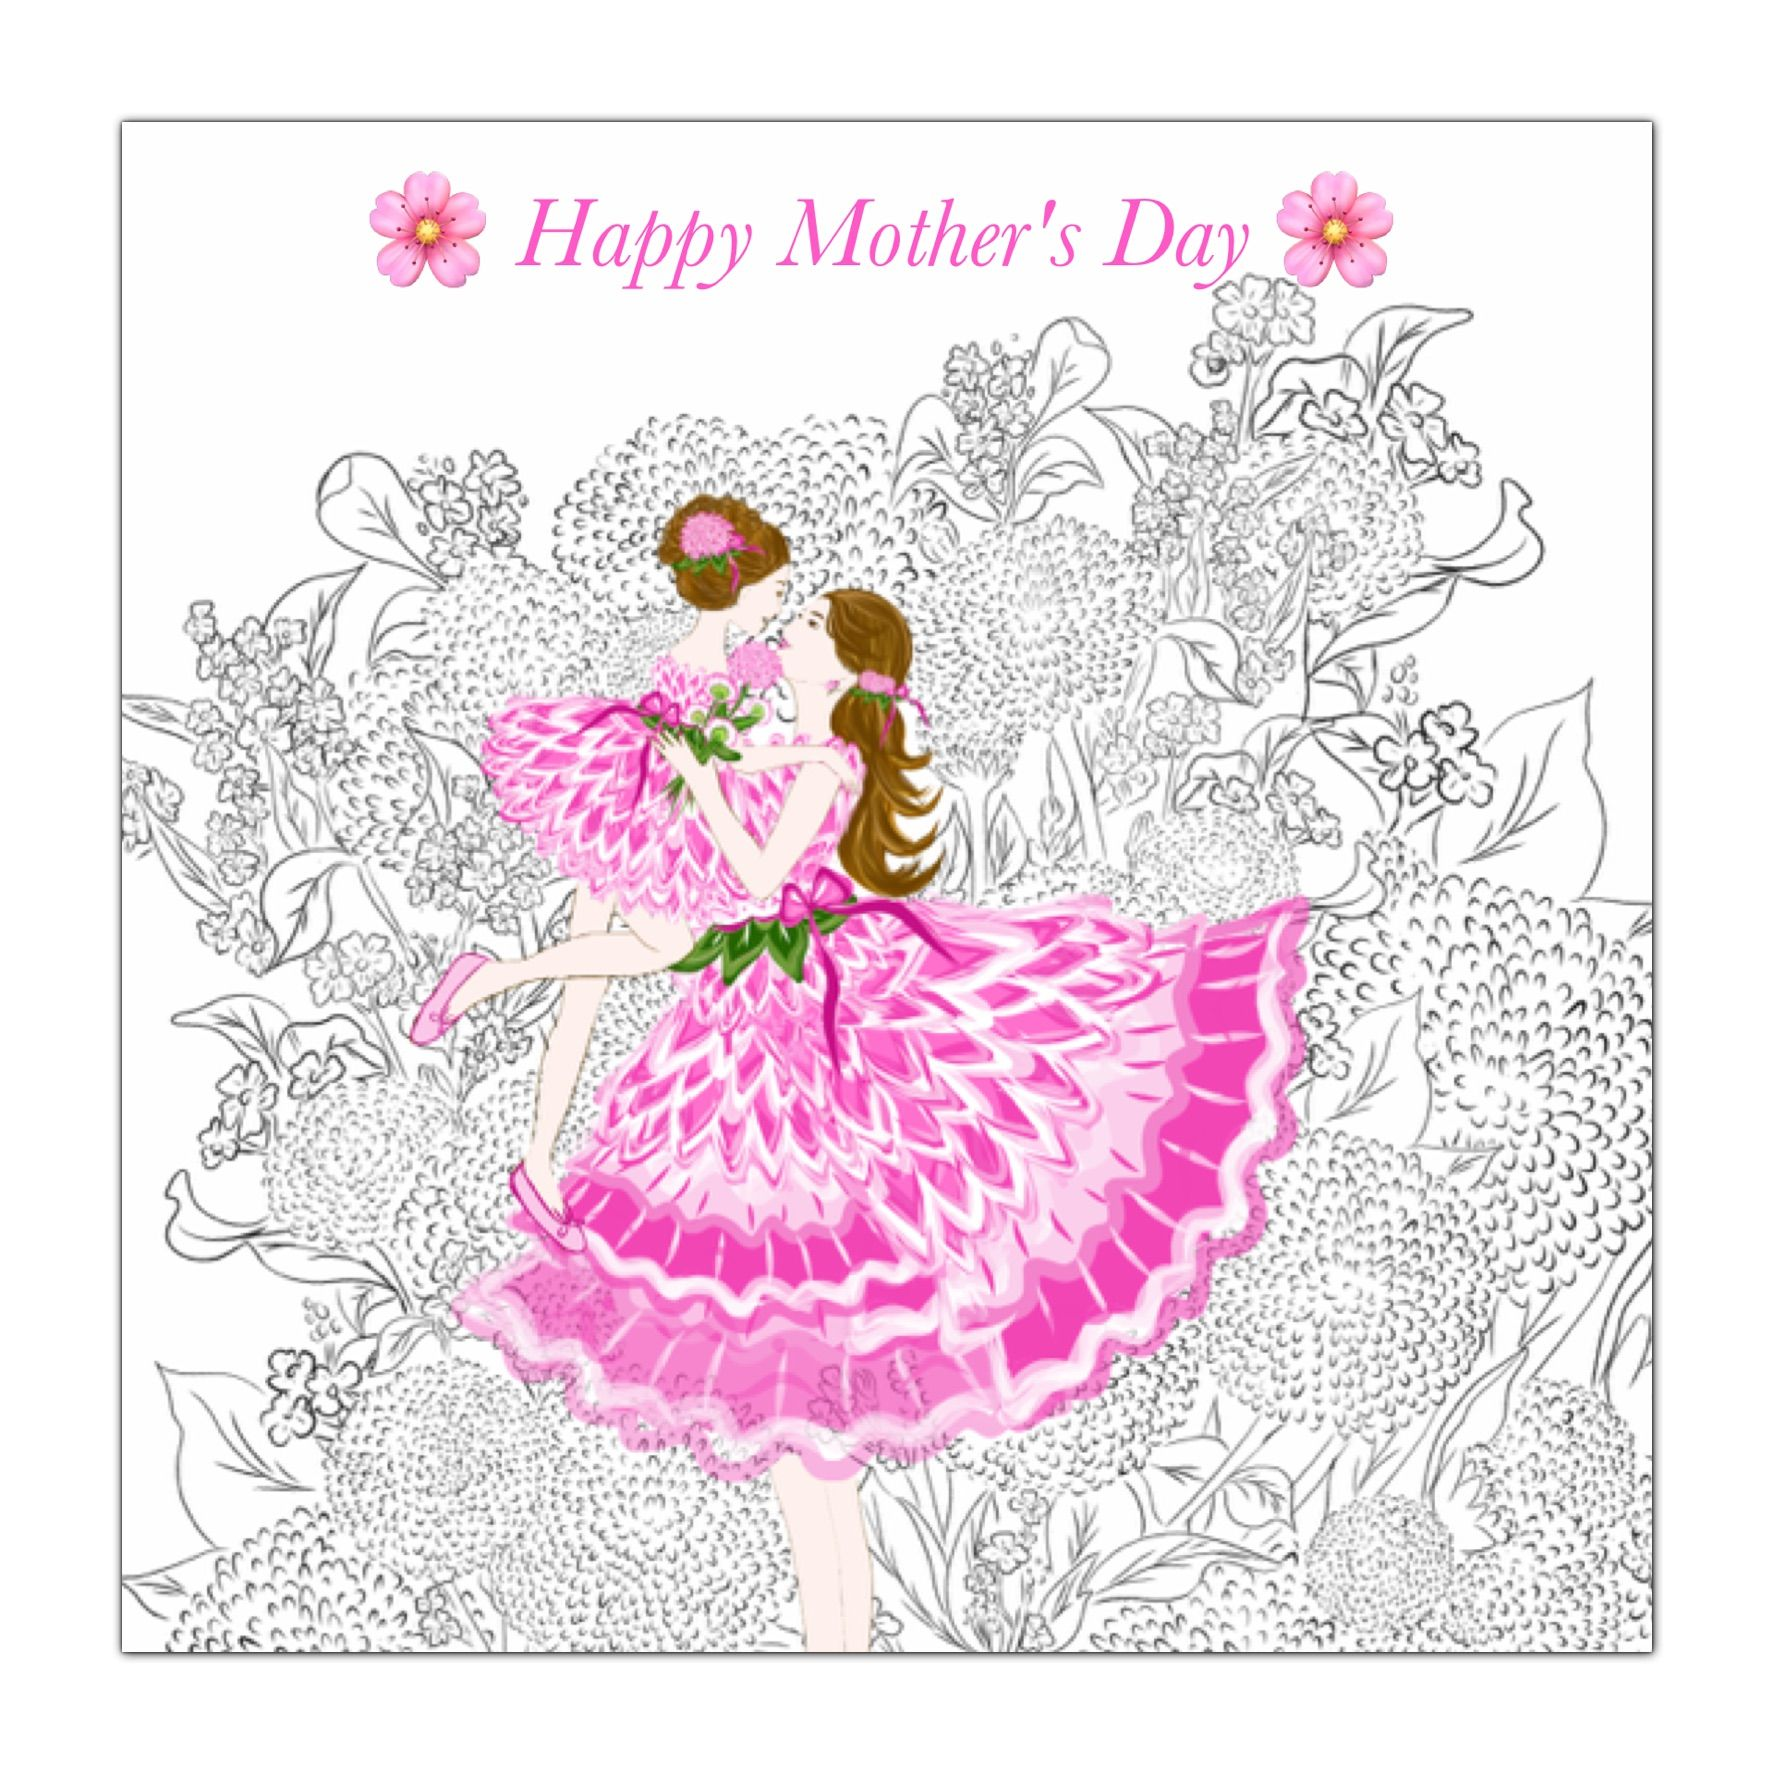 Mother's Day by Aikotopia  #happymothersday #adultcoloring